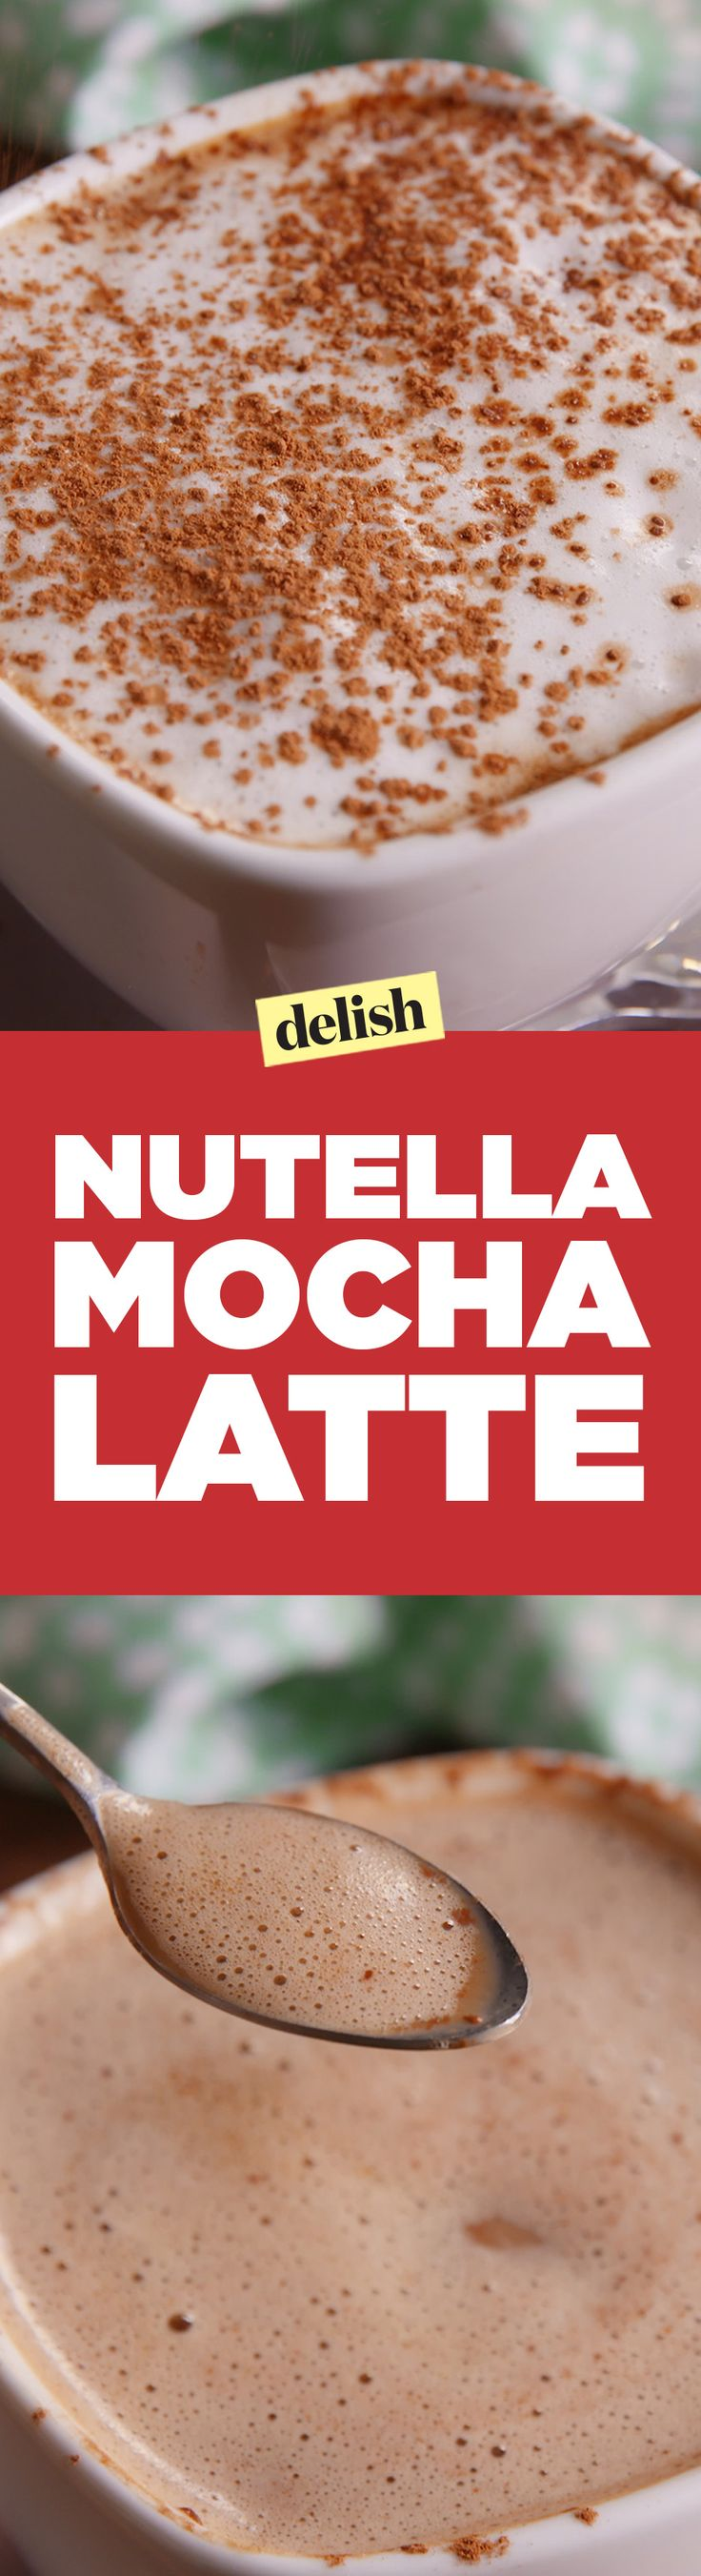 This Nutella mocha latte uses the easiest hack ever to froth milk. Get the recipe on Delish.com.